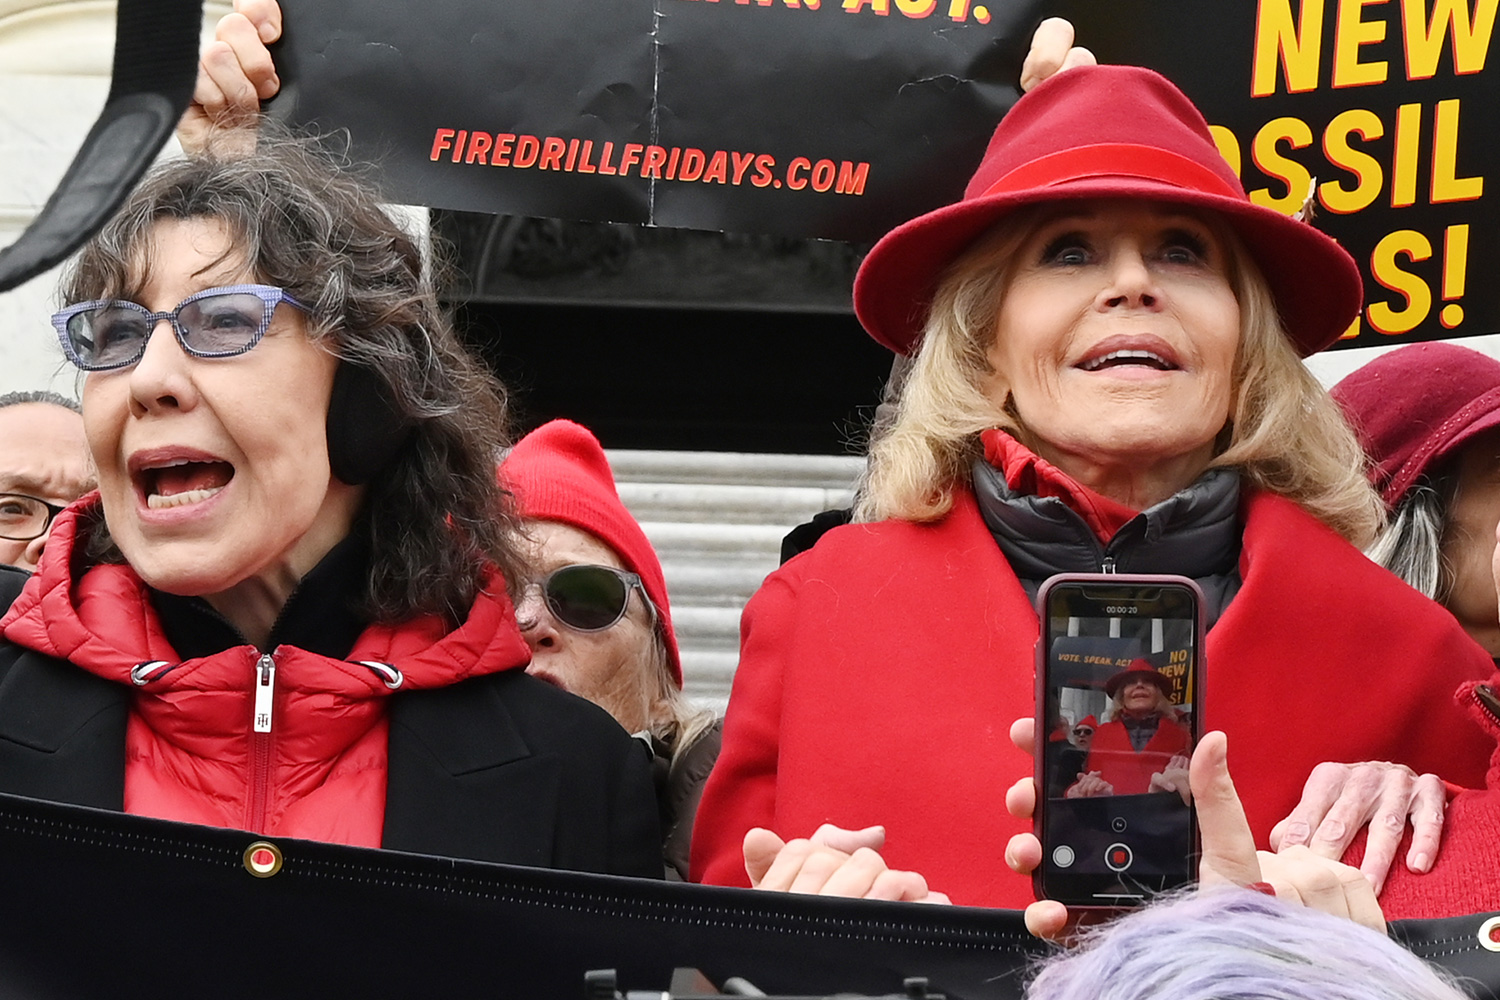 Actresses and activists Lily Tomlin (L) and Jane Fonda hold hands as they lead a climate protest on the steps of the US Capitol in Washington, DC on December 27, 2019. - The rally marked the 12th consecutive Friday that Jane Fonda has led protests in Washington, DC. The protests call for an end to new fossil fuel exploration while this week's demonstration focused on the impact of climate change on the world's forests.